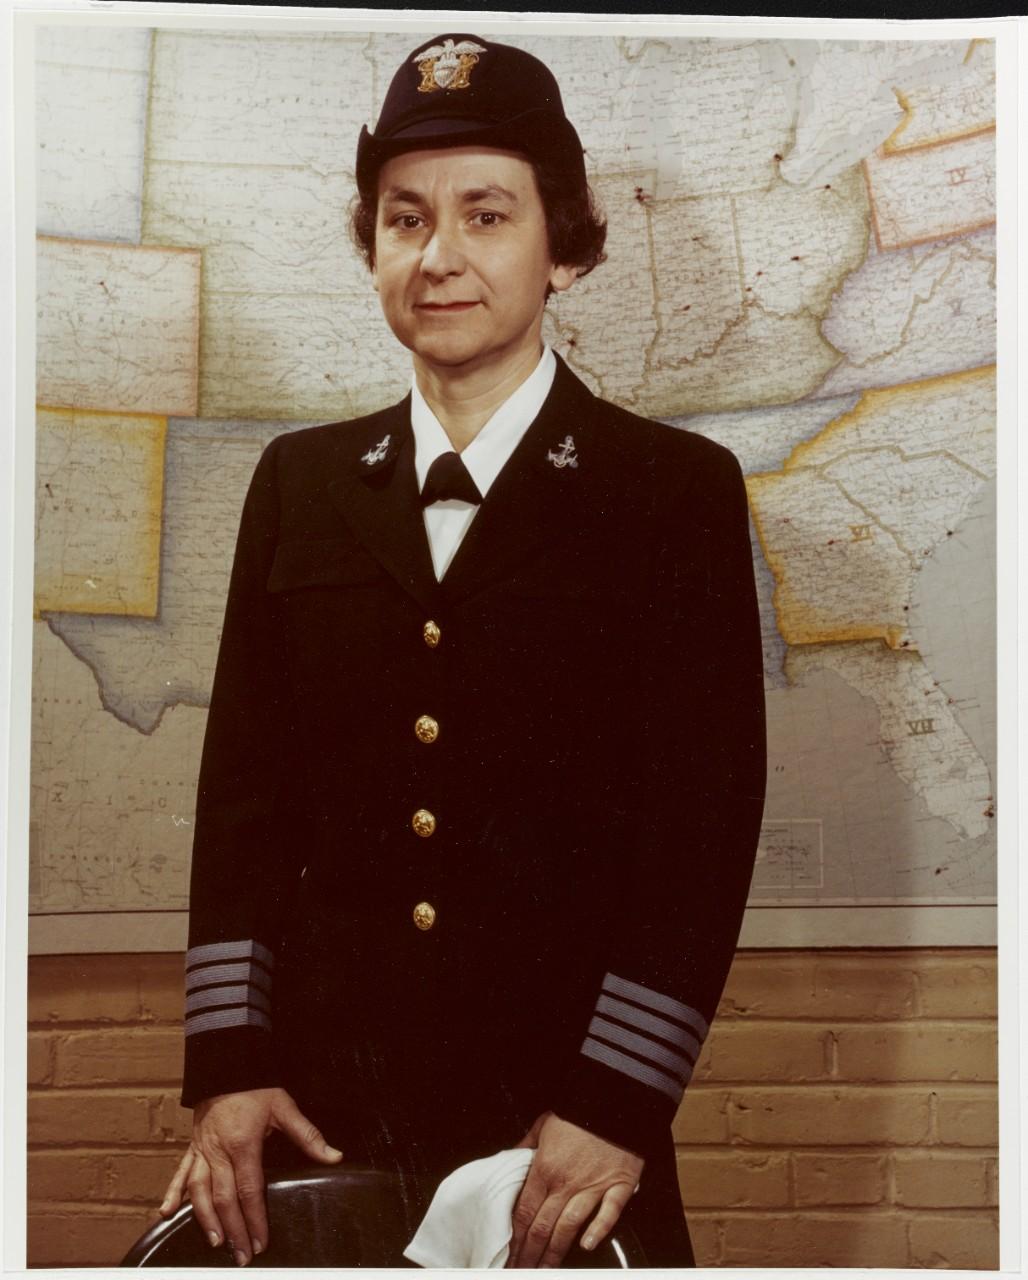 Photo #: 80-G-K-13979 Captain Mildred H. McAfee, USNR